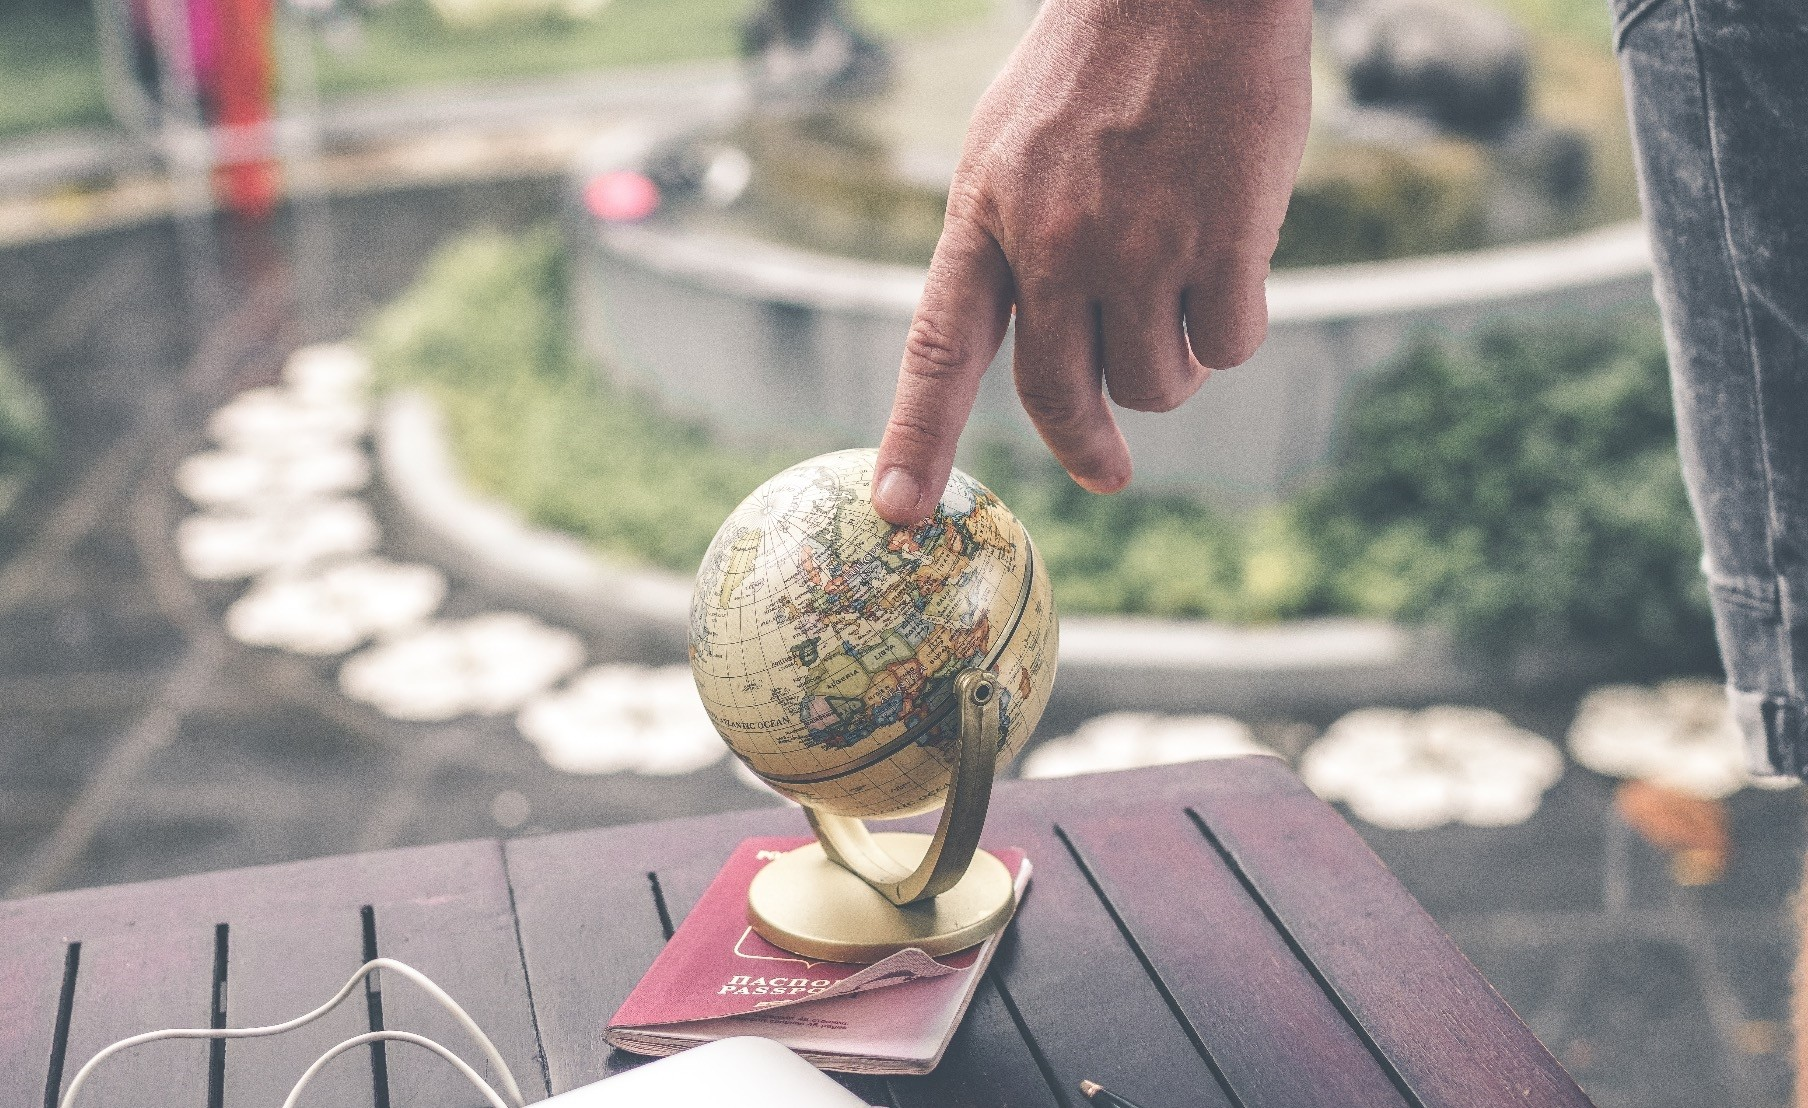 The world is such a small place when compared to a few decades ago. Now, it is easy to get your hands on a product that is produced in a faraway country or have a conversation with someone that sits across the world.